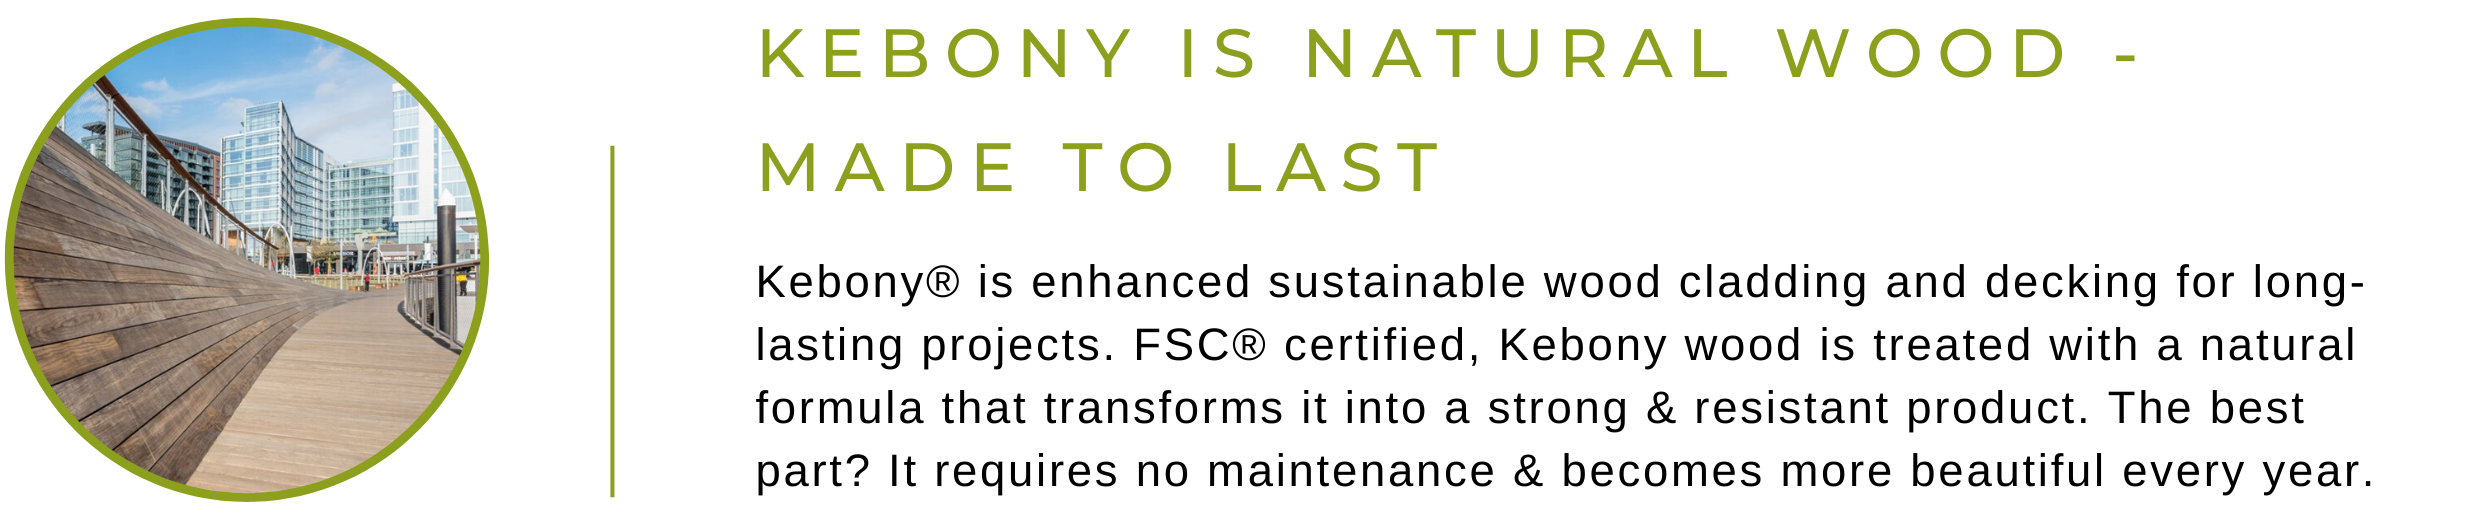 Kebony is Natural Wood, Made to Last - ebony® is enhanced sustainable wood cladding and decking for long-lasting projects. FSC® certified, Kebony wood is treated with a natural formula that transforms it into a strong & resistant product. The best part? It requires no maintenance & becomes more beautiful every year.